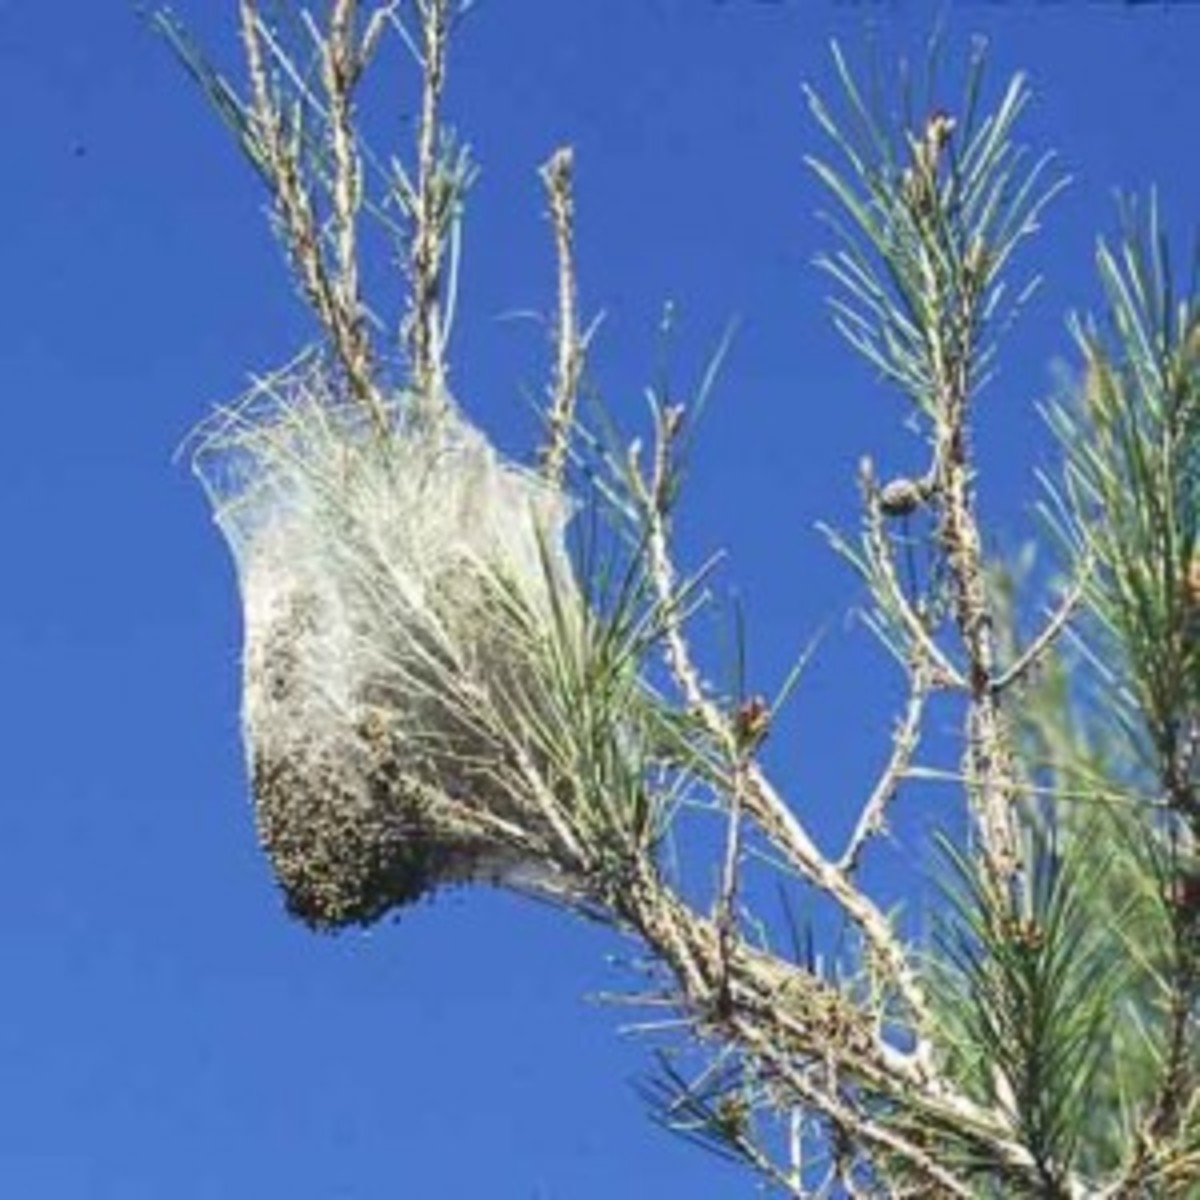 A Caterpillar Nest